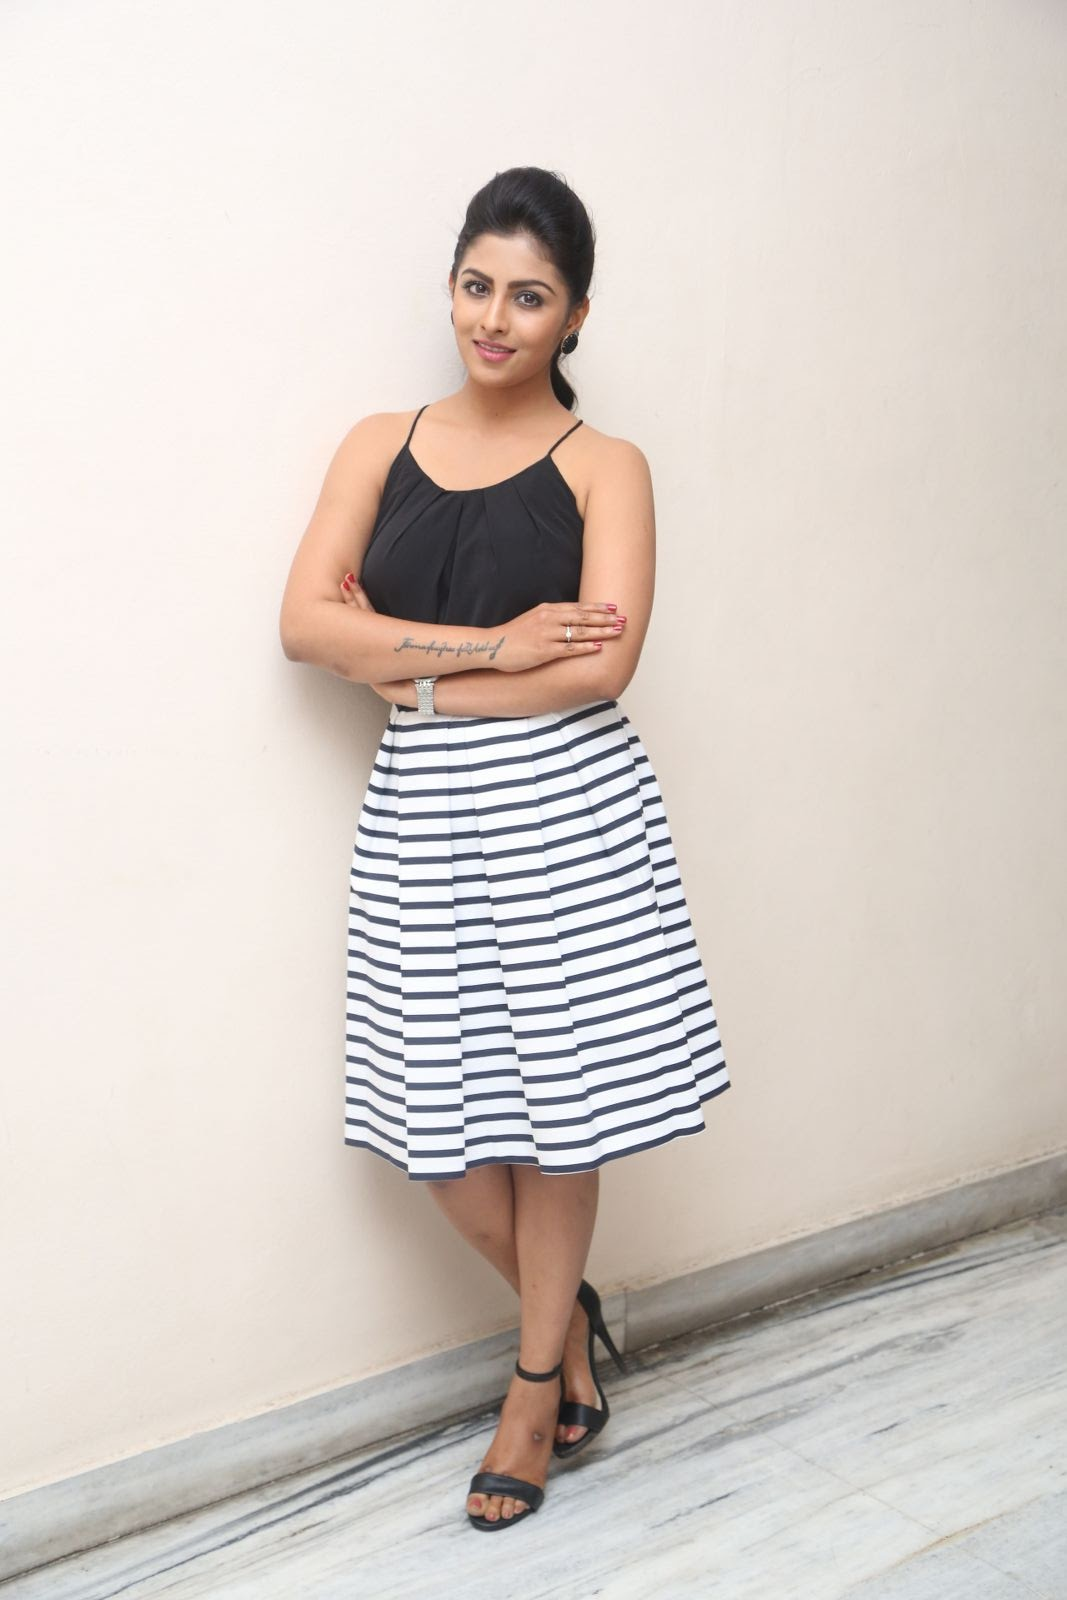 kruthika jayakumar new photos-HQ-Photo-18